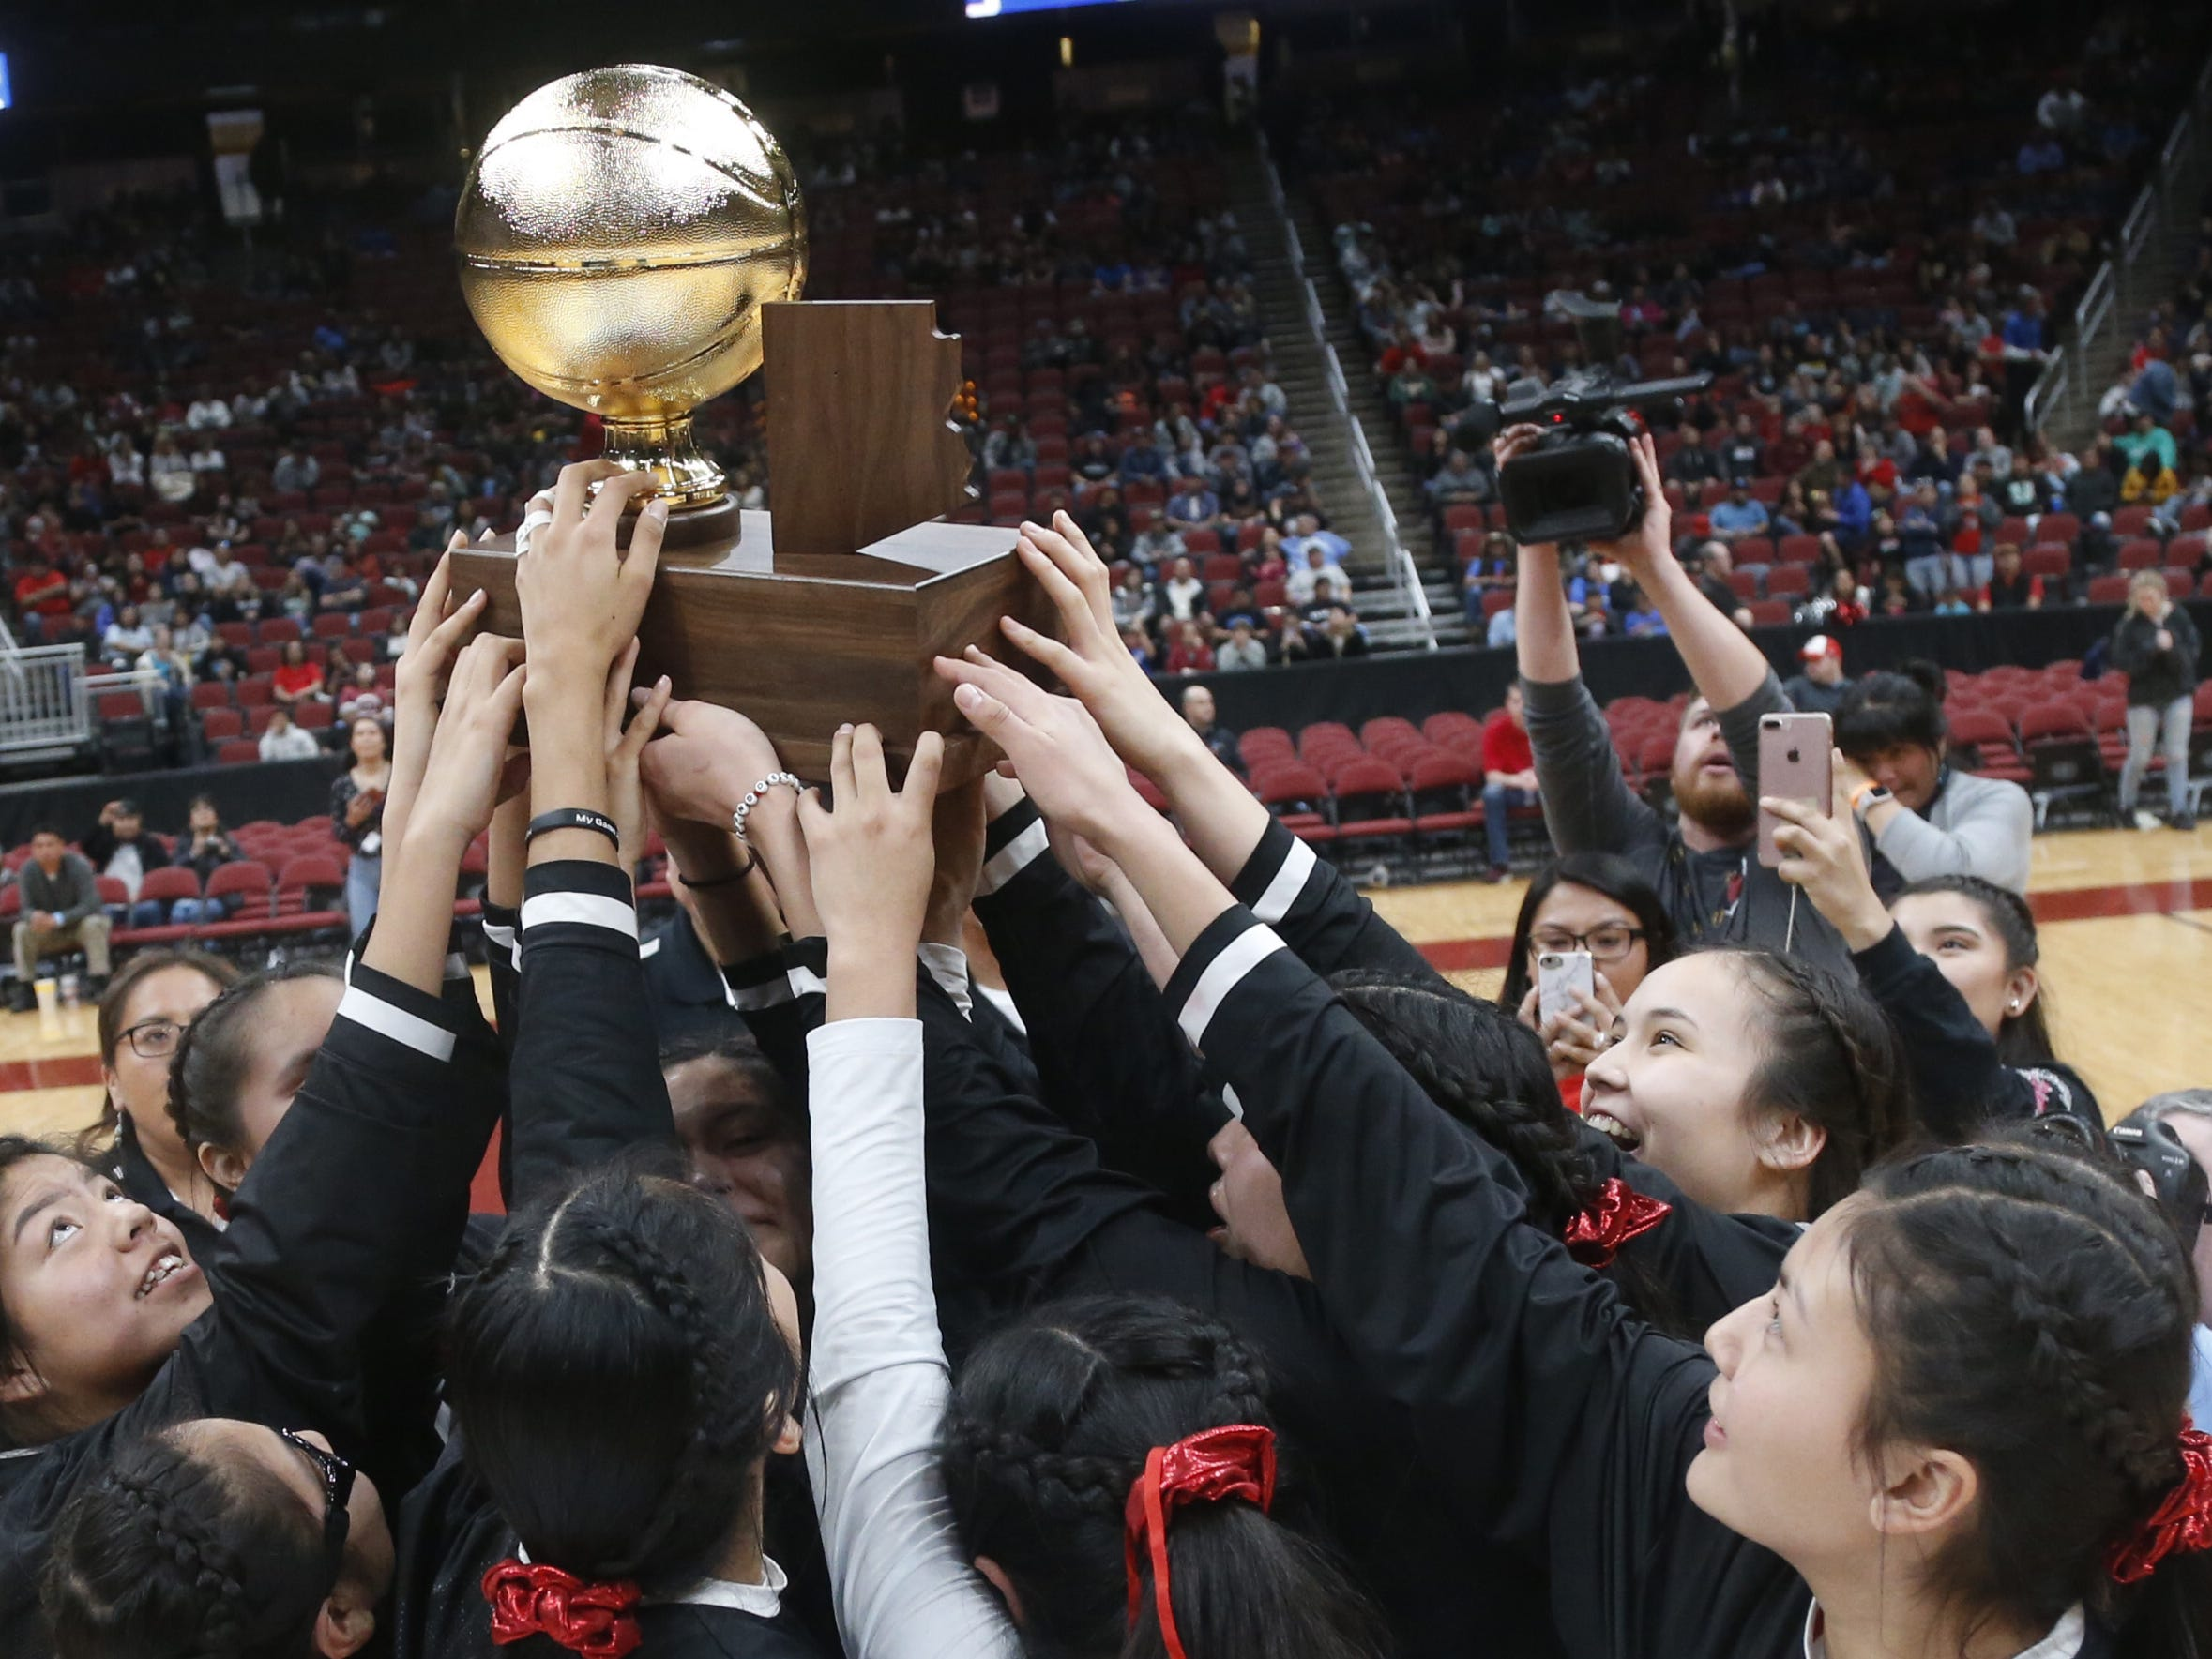 Page celebrates lifting the championship trophy after winning the 3A girls basketball state championship game over Holbrook at Gila River Arena in Glendale, Ariz. on February 23, 2019.